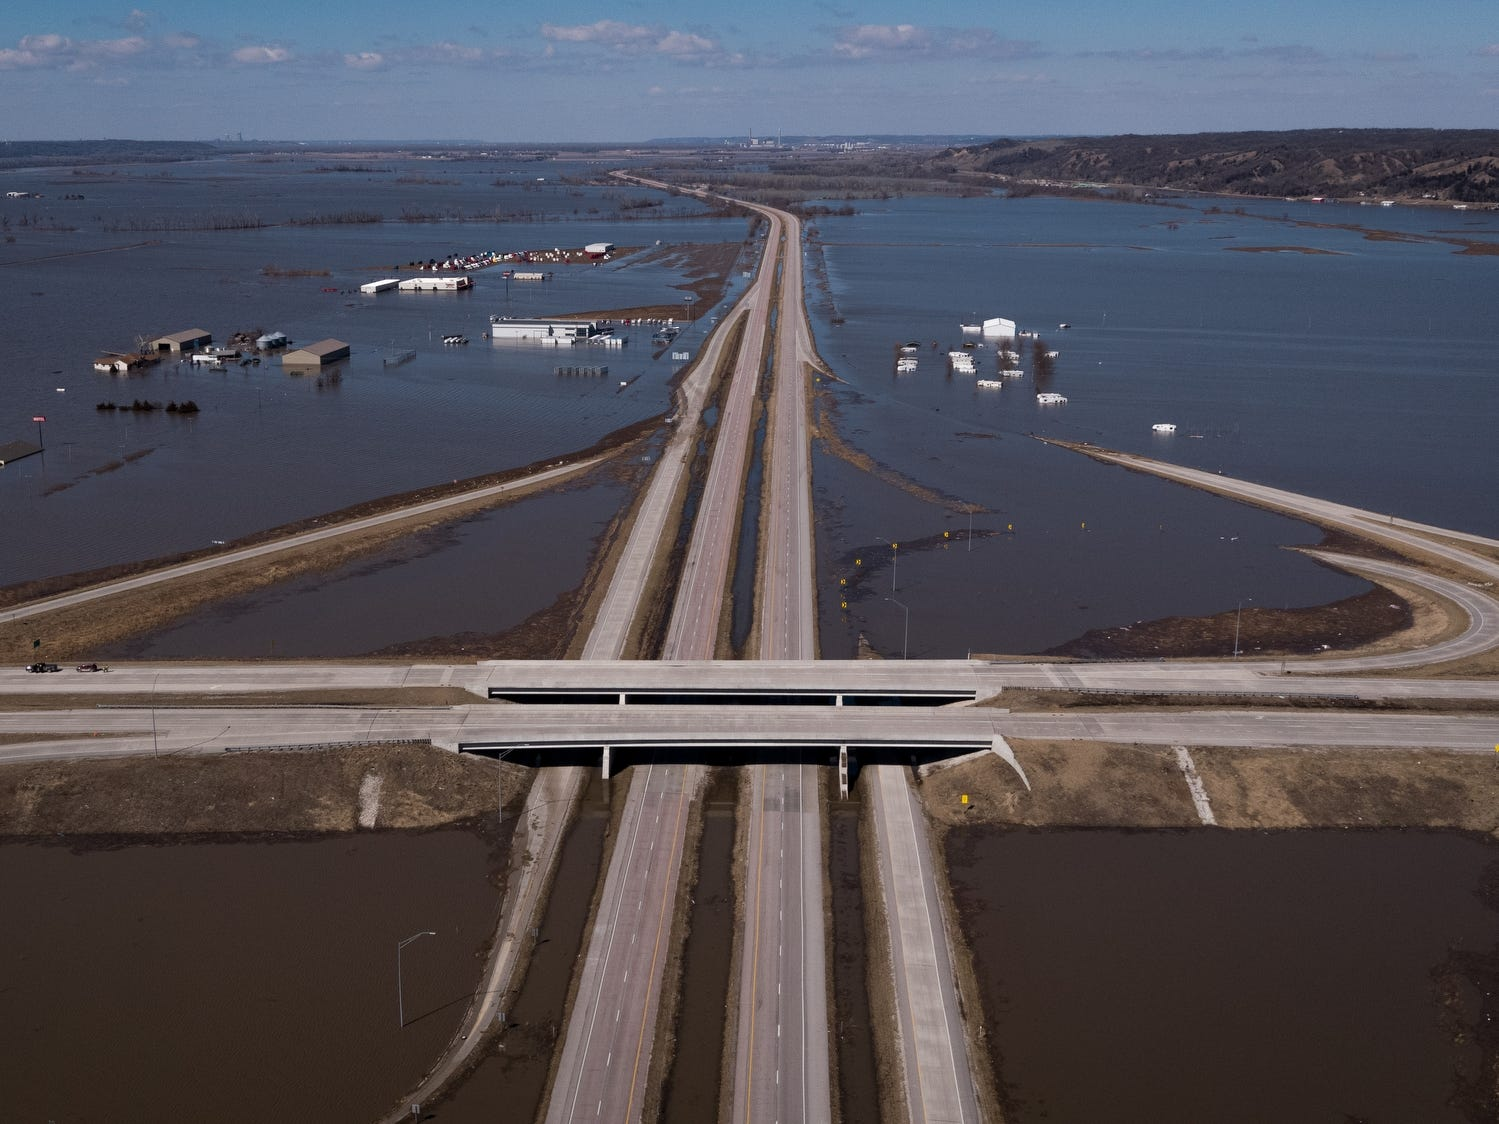 I-29 at the intersection of Highway 34, flood waters continue to overwhelm the surrounding communities on March 20, 2019, in Mills County, Iowa.